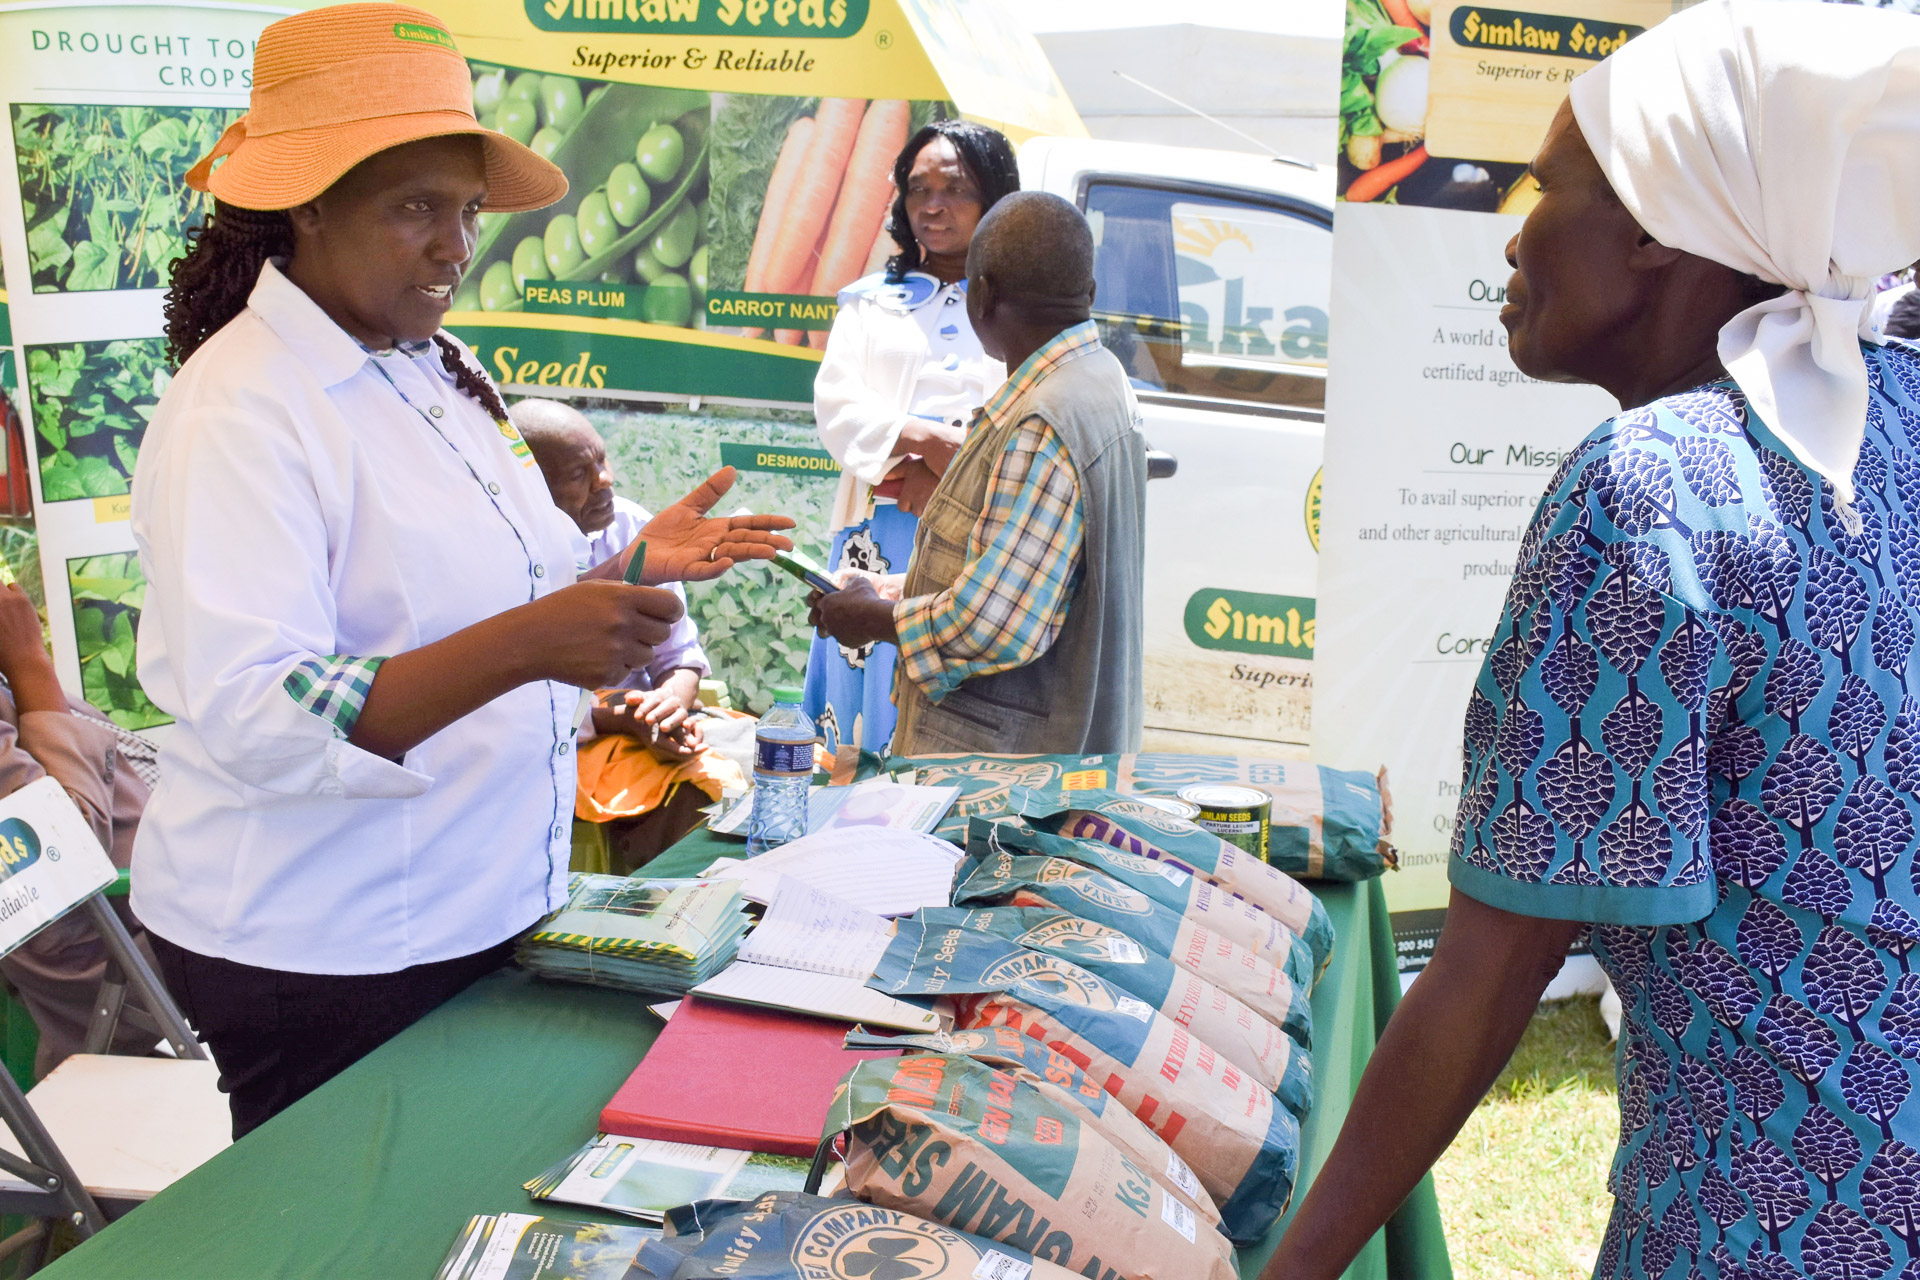 A seed company representative shows seeds to a farmer during the visit to the demonstration farm. (Photo: Joshua Masinde/CIMMYT)